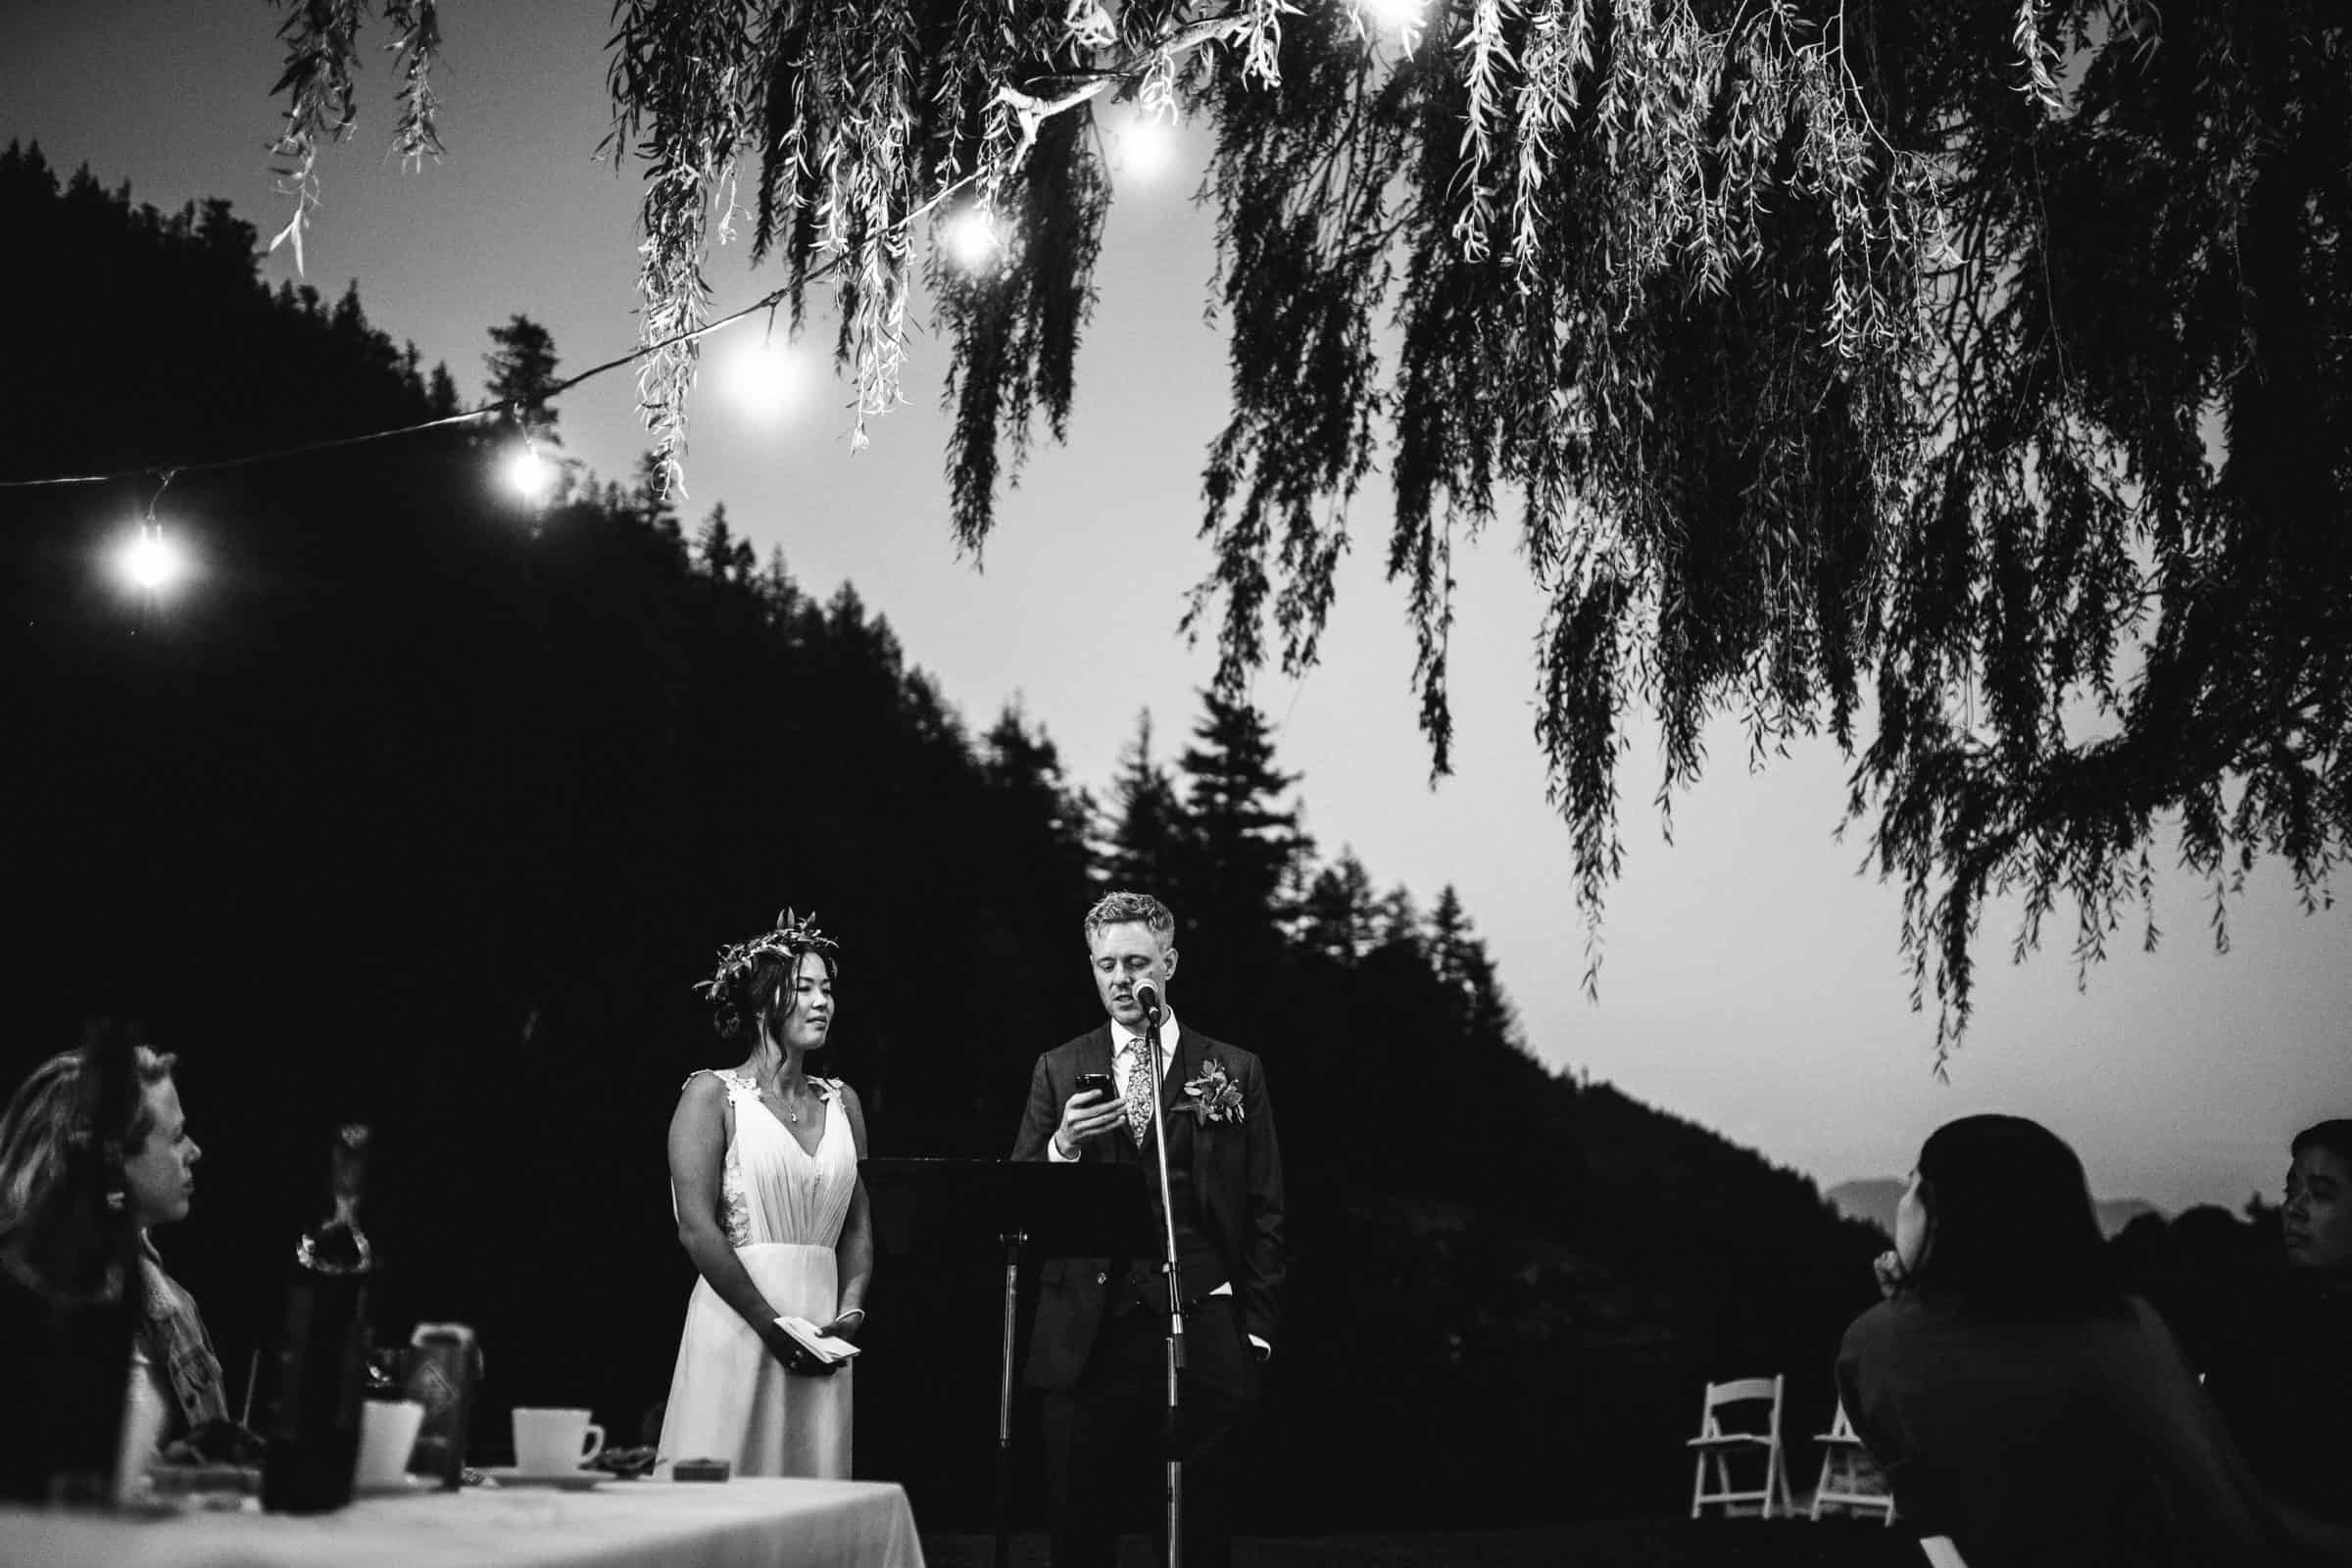 black and white image of bride and groom giving speech under trees and lights